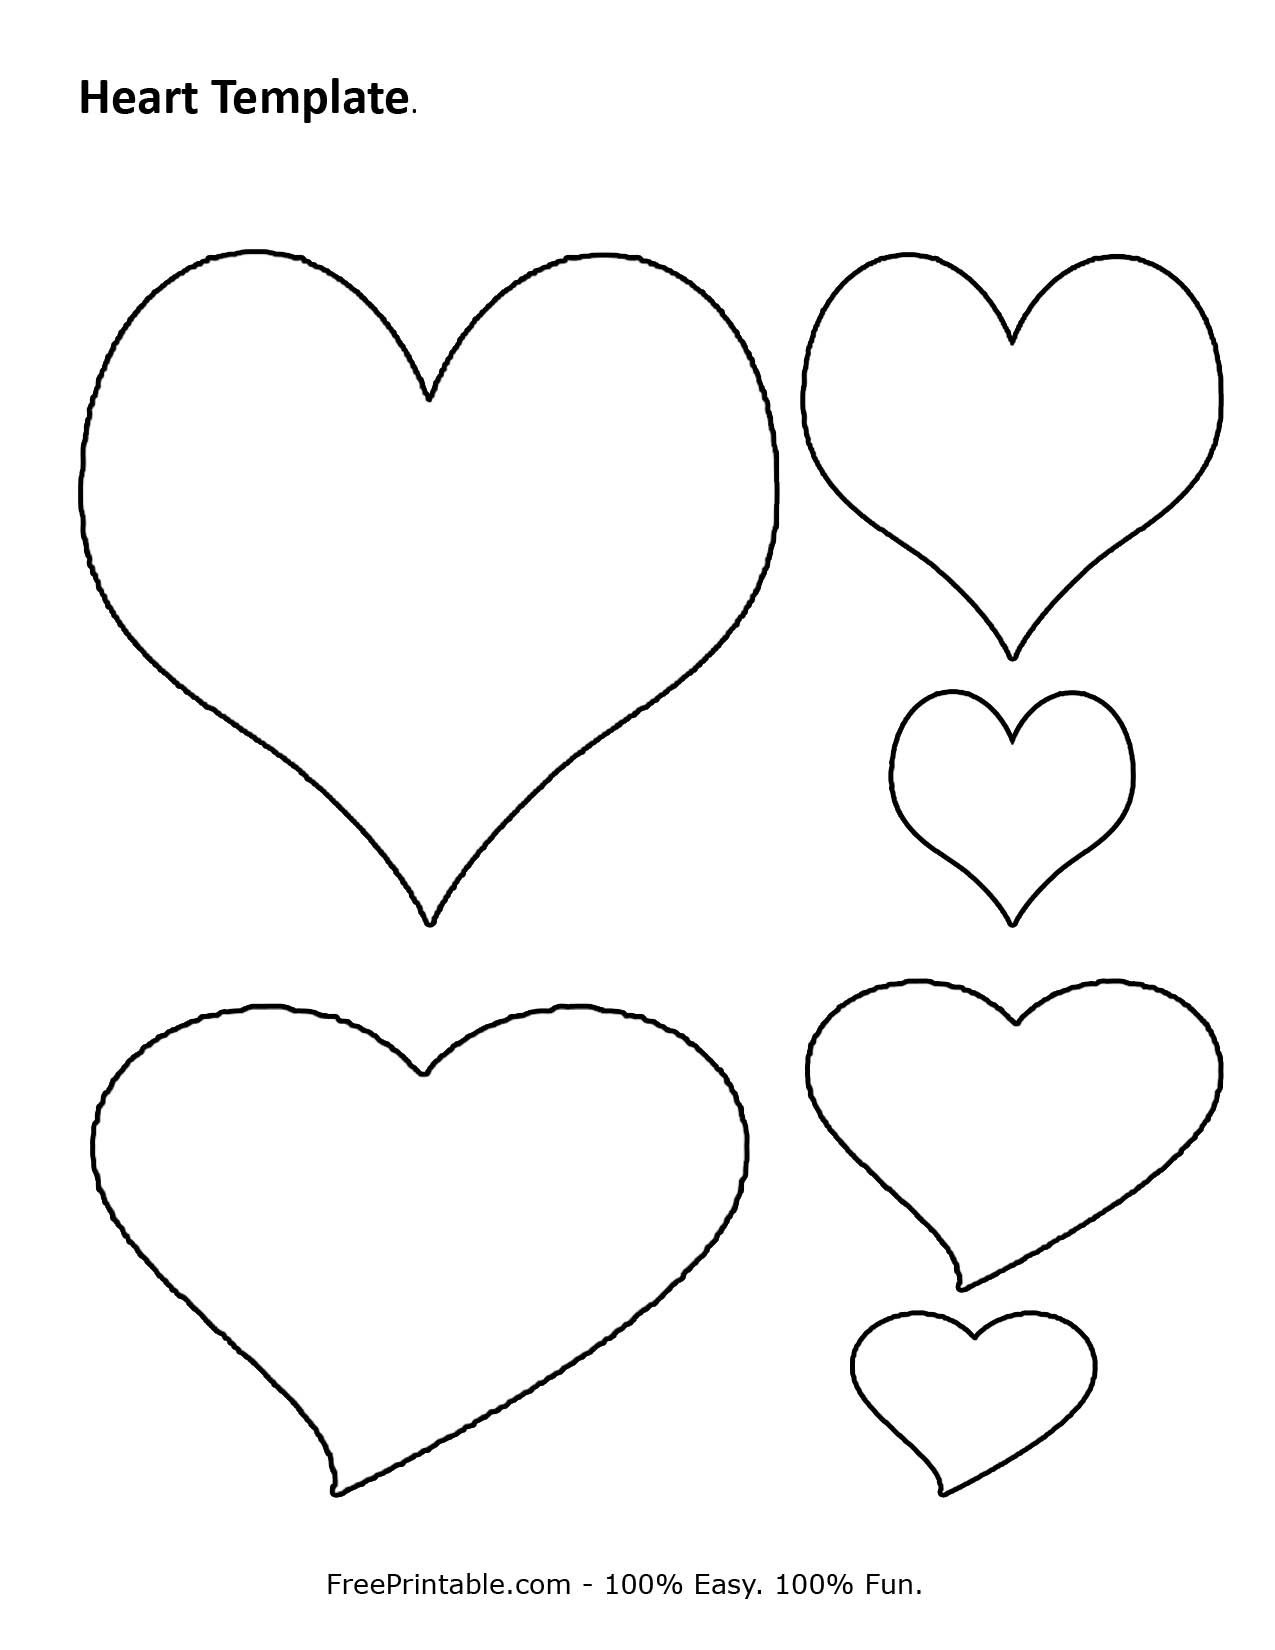 Free Printable Heart Template | Cupid Has A Heart On | Heart - Free Printable Pictures Of Cupid